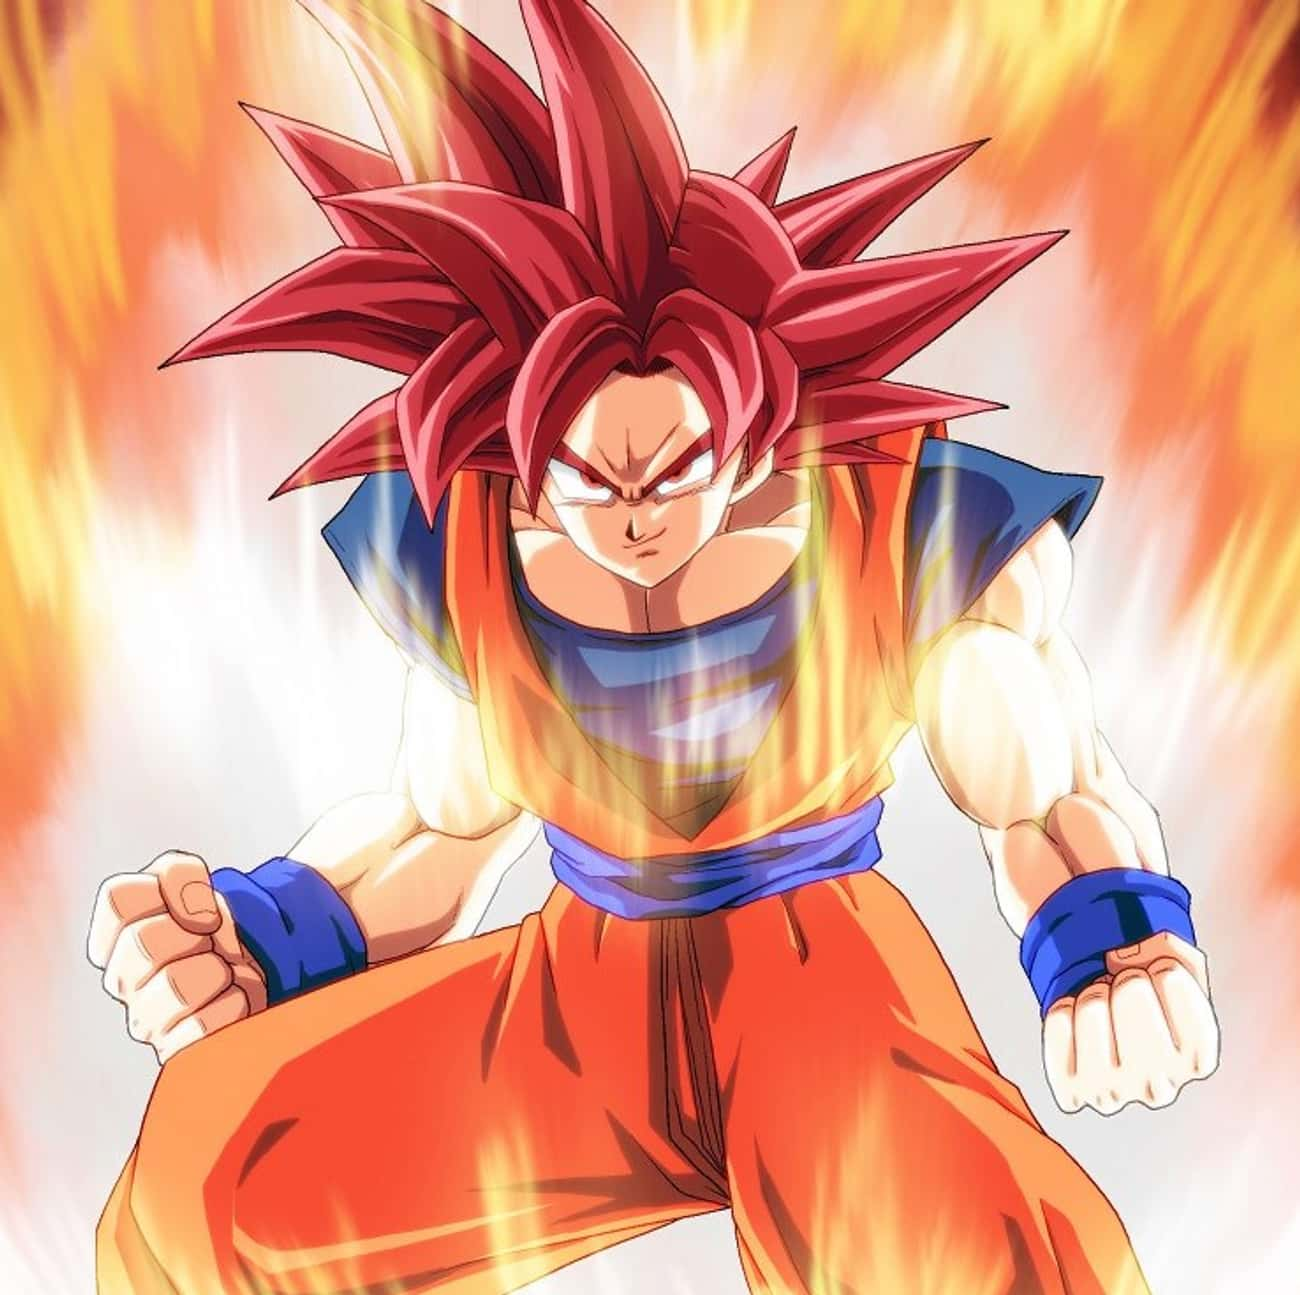 Super Saiyan  - Dragon Ball Z is listed (or ranked) 3 on the list The 25+ Anime Superpowers You Want Most